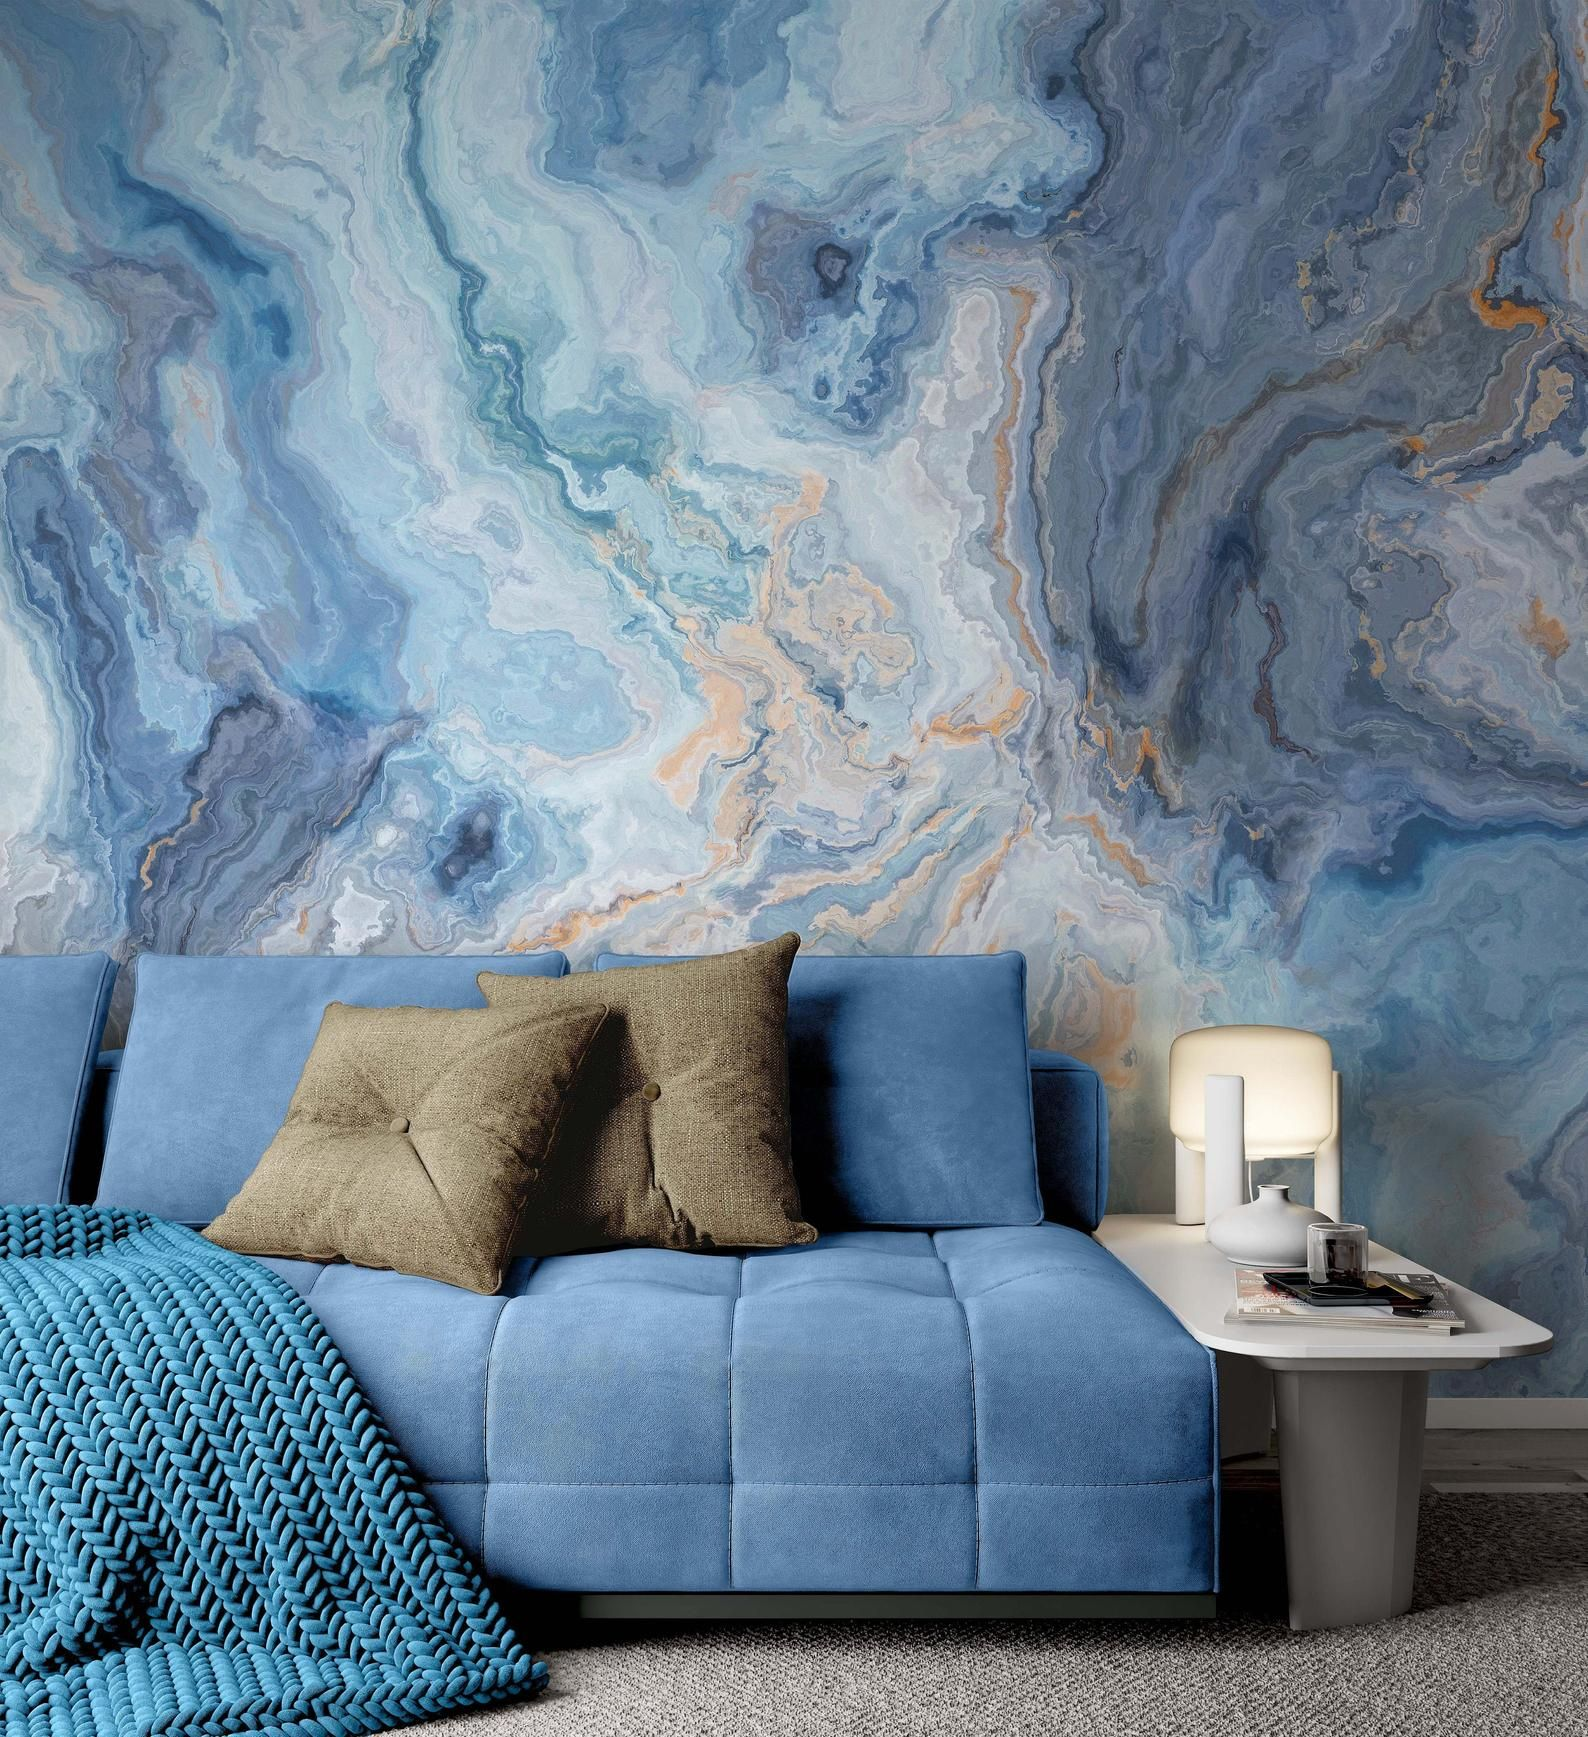 Blue Marble Pattern With Curly Grey And Golden Look Veins Etsy In 2021 Blue Grey Wallpaper Blue Marble Wallpaper Blue Marble